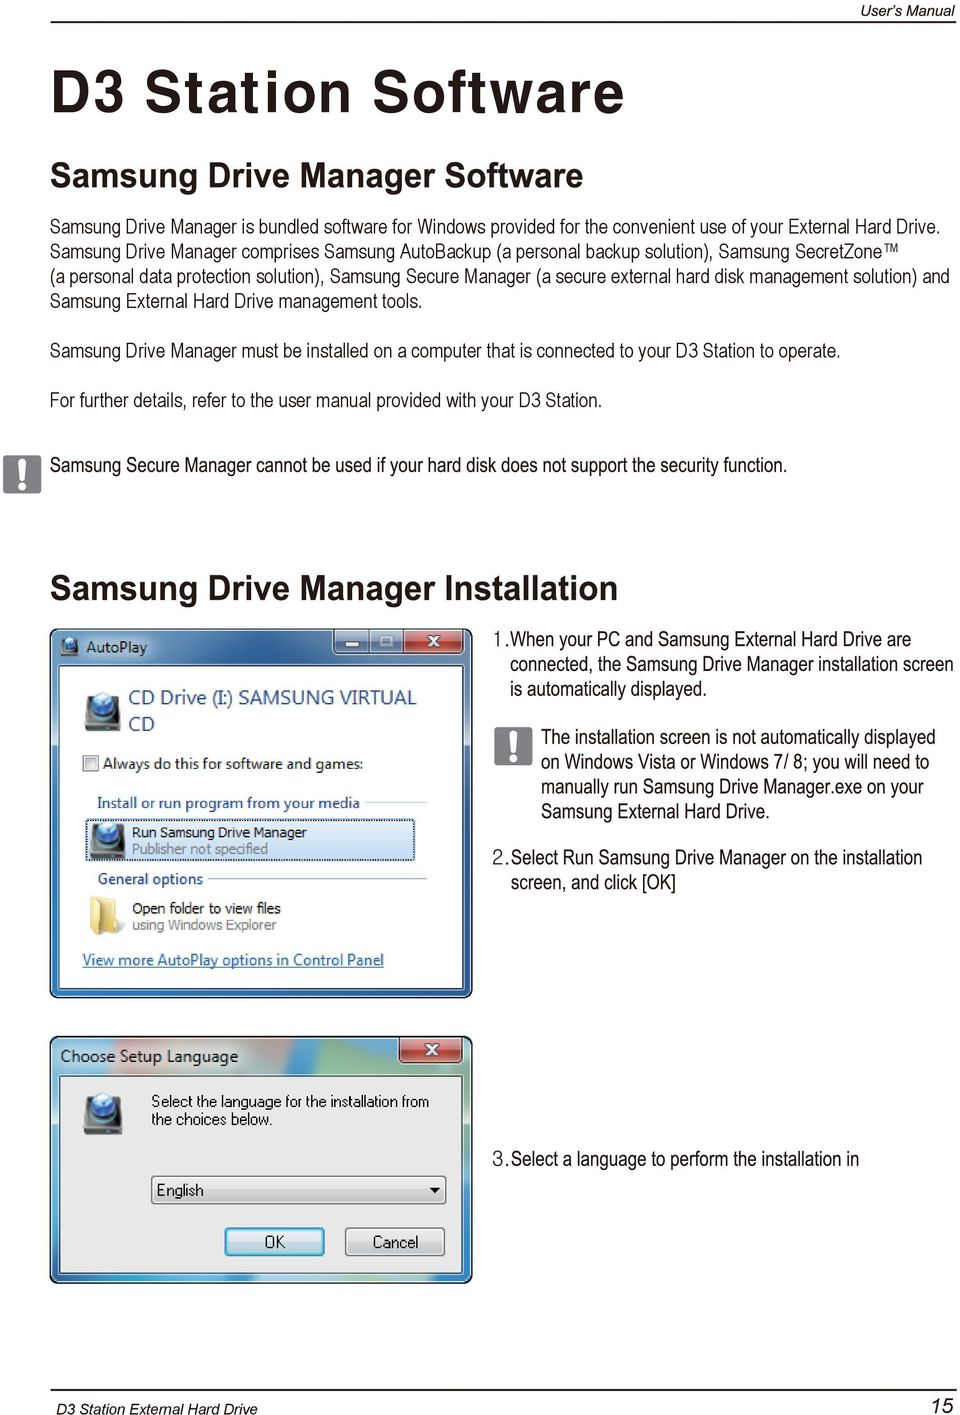 Samsung Secure Manager (a secure external hard disk management solution) and Samsung External Hard Drive management tools.